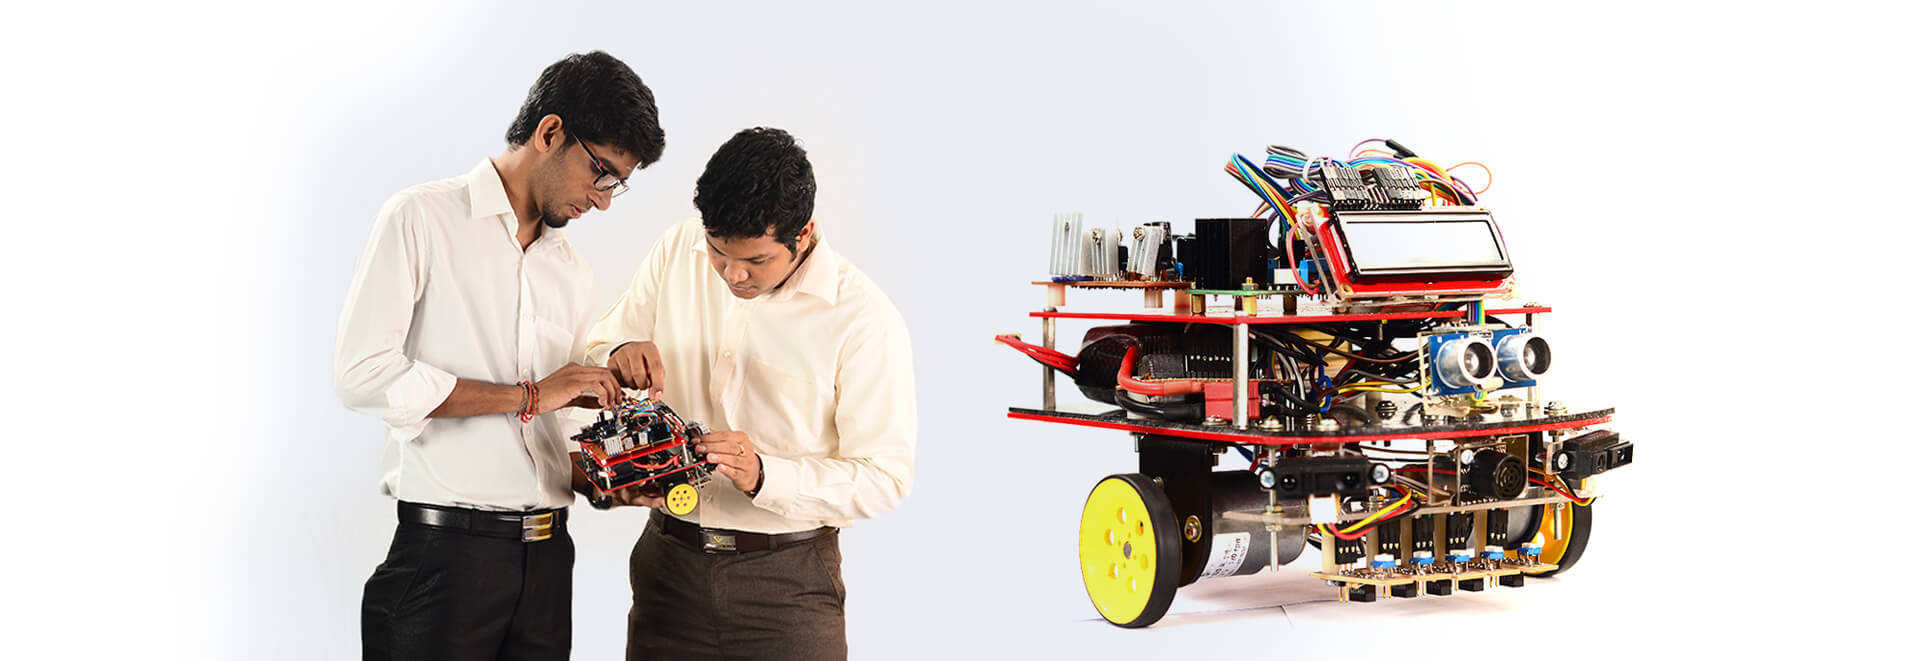 sliit-research-engineering-faculty